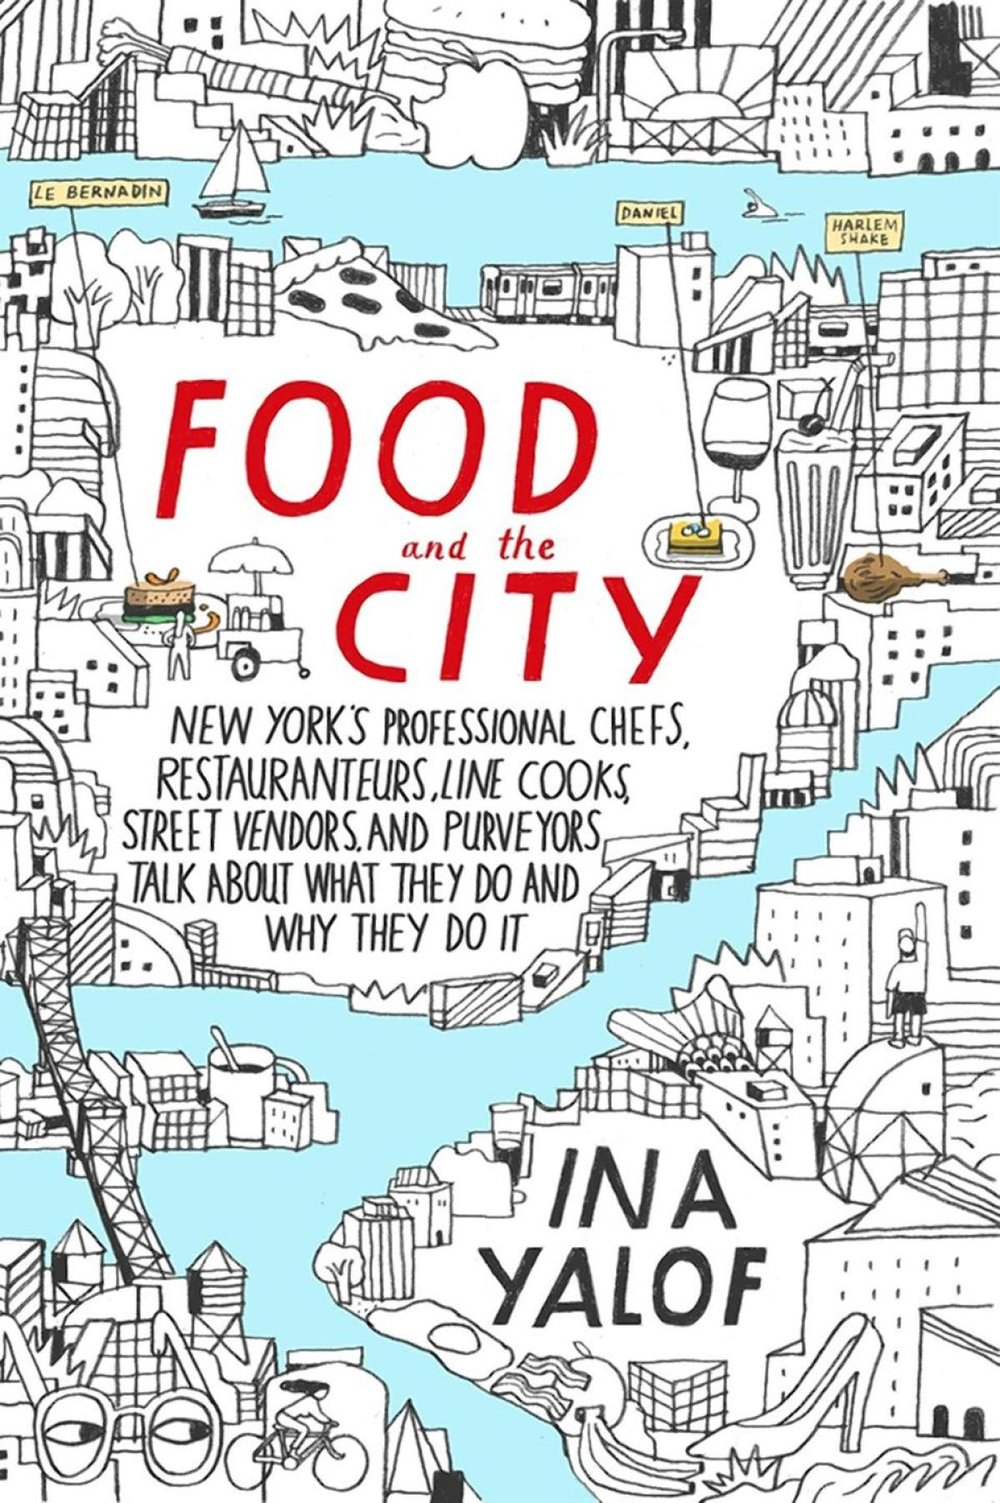 """FOOD AND THE CITY: New York's Professional Chefs, Restaurateurs, Line Cooks, Street Vendors, and Purveyors Talk About What They Do and Why They Do It,"" by Ina Yalof. (HANDOUT)"